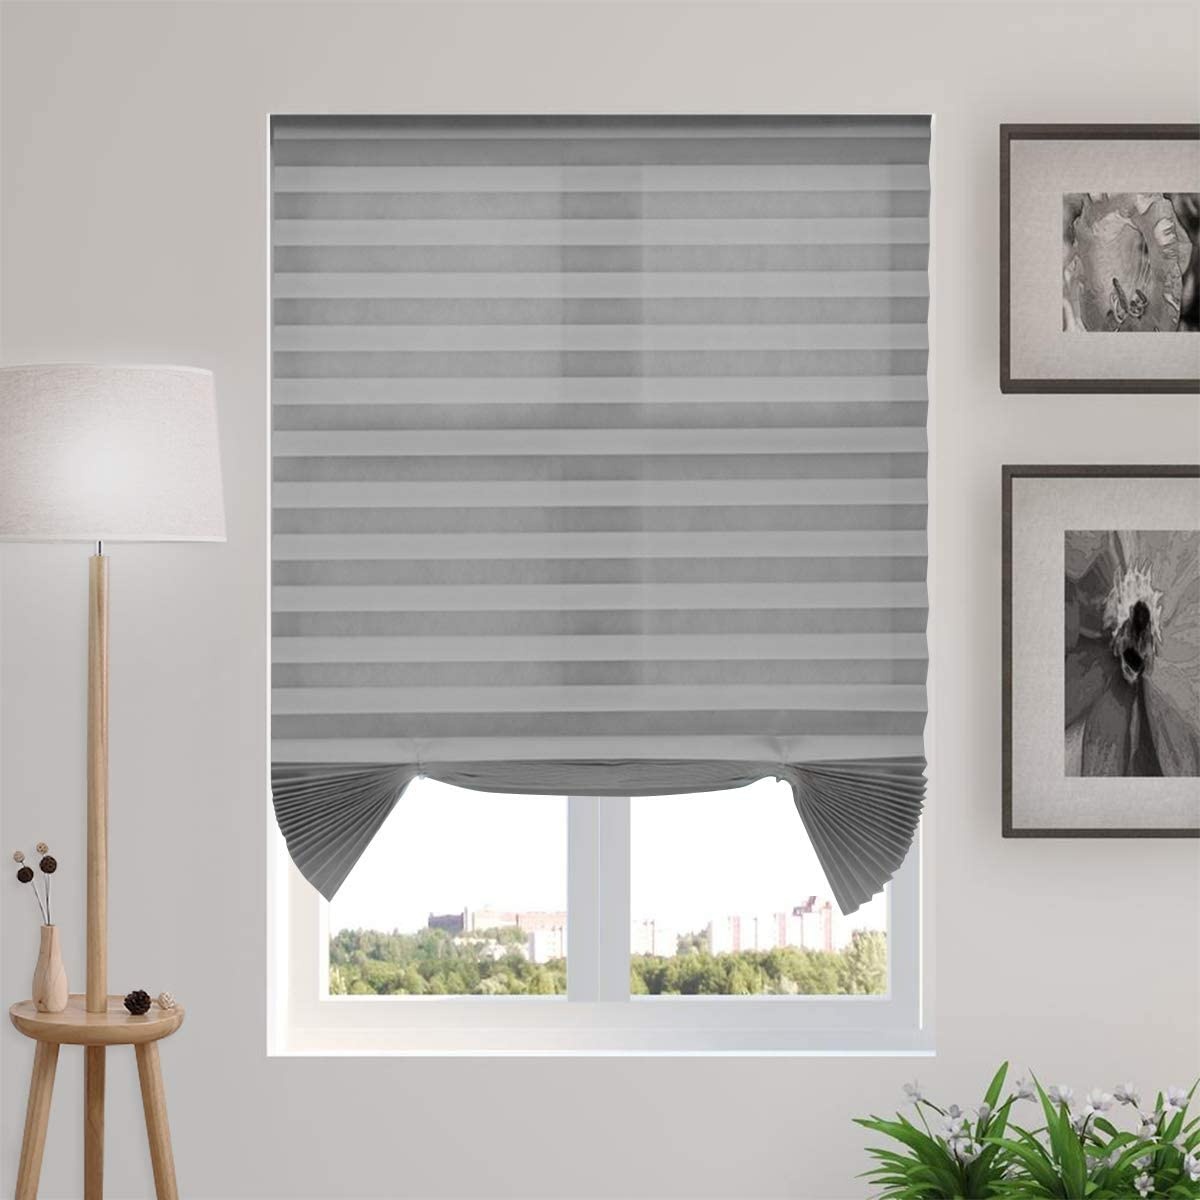 Temporary Blinds Cordless Pleated Windows 出色 and for Shades 超激安特価